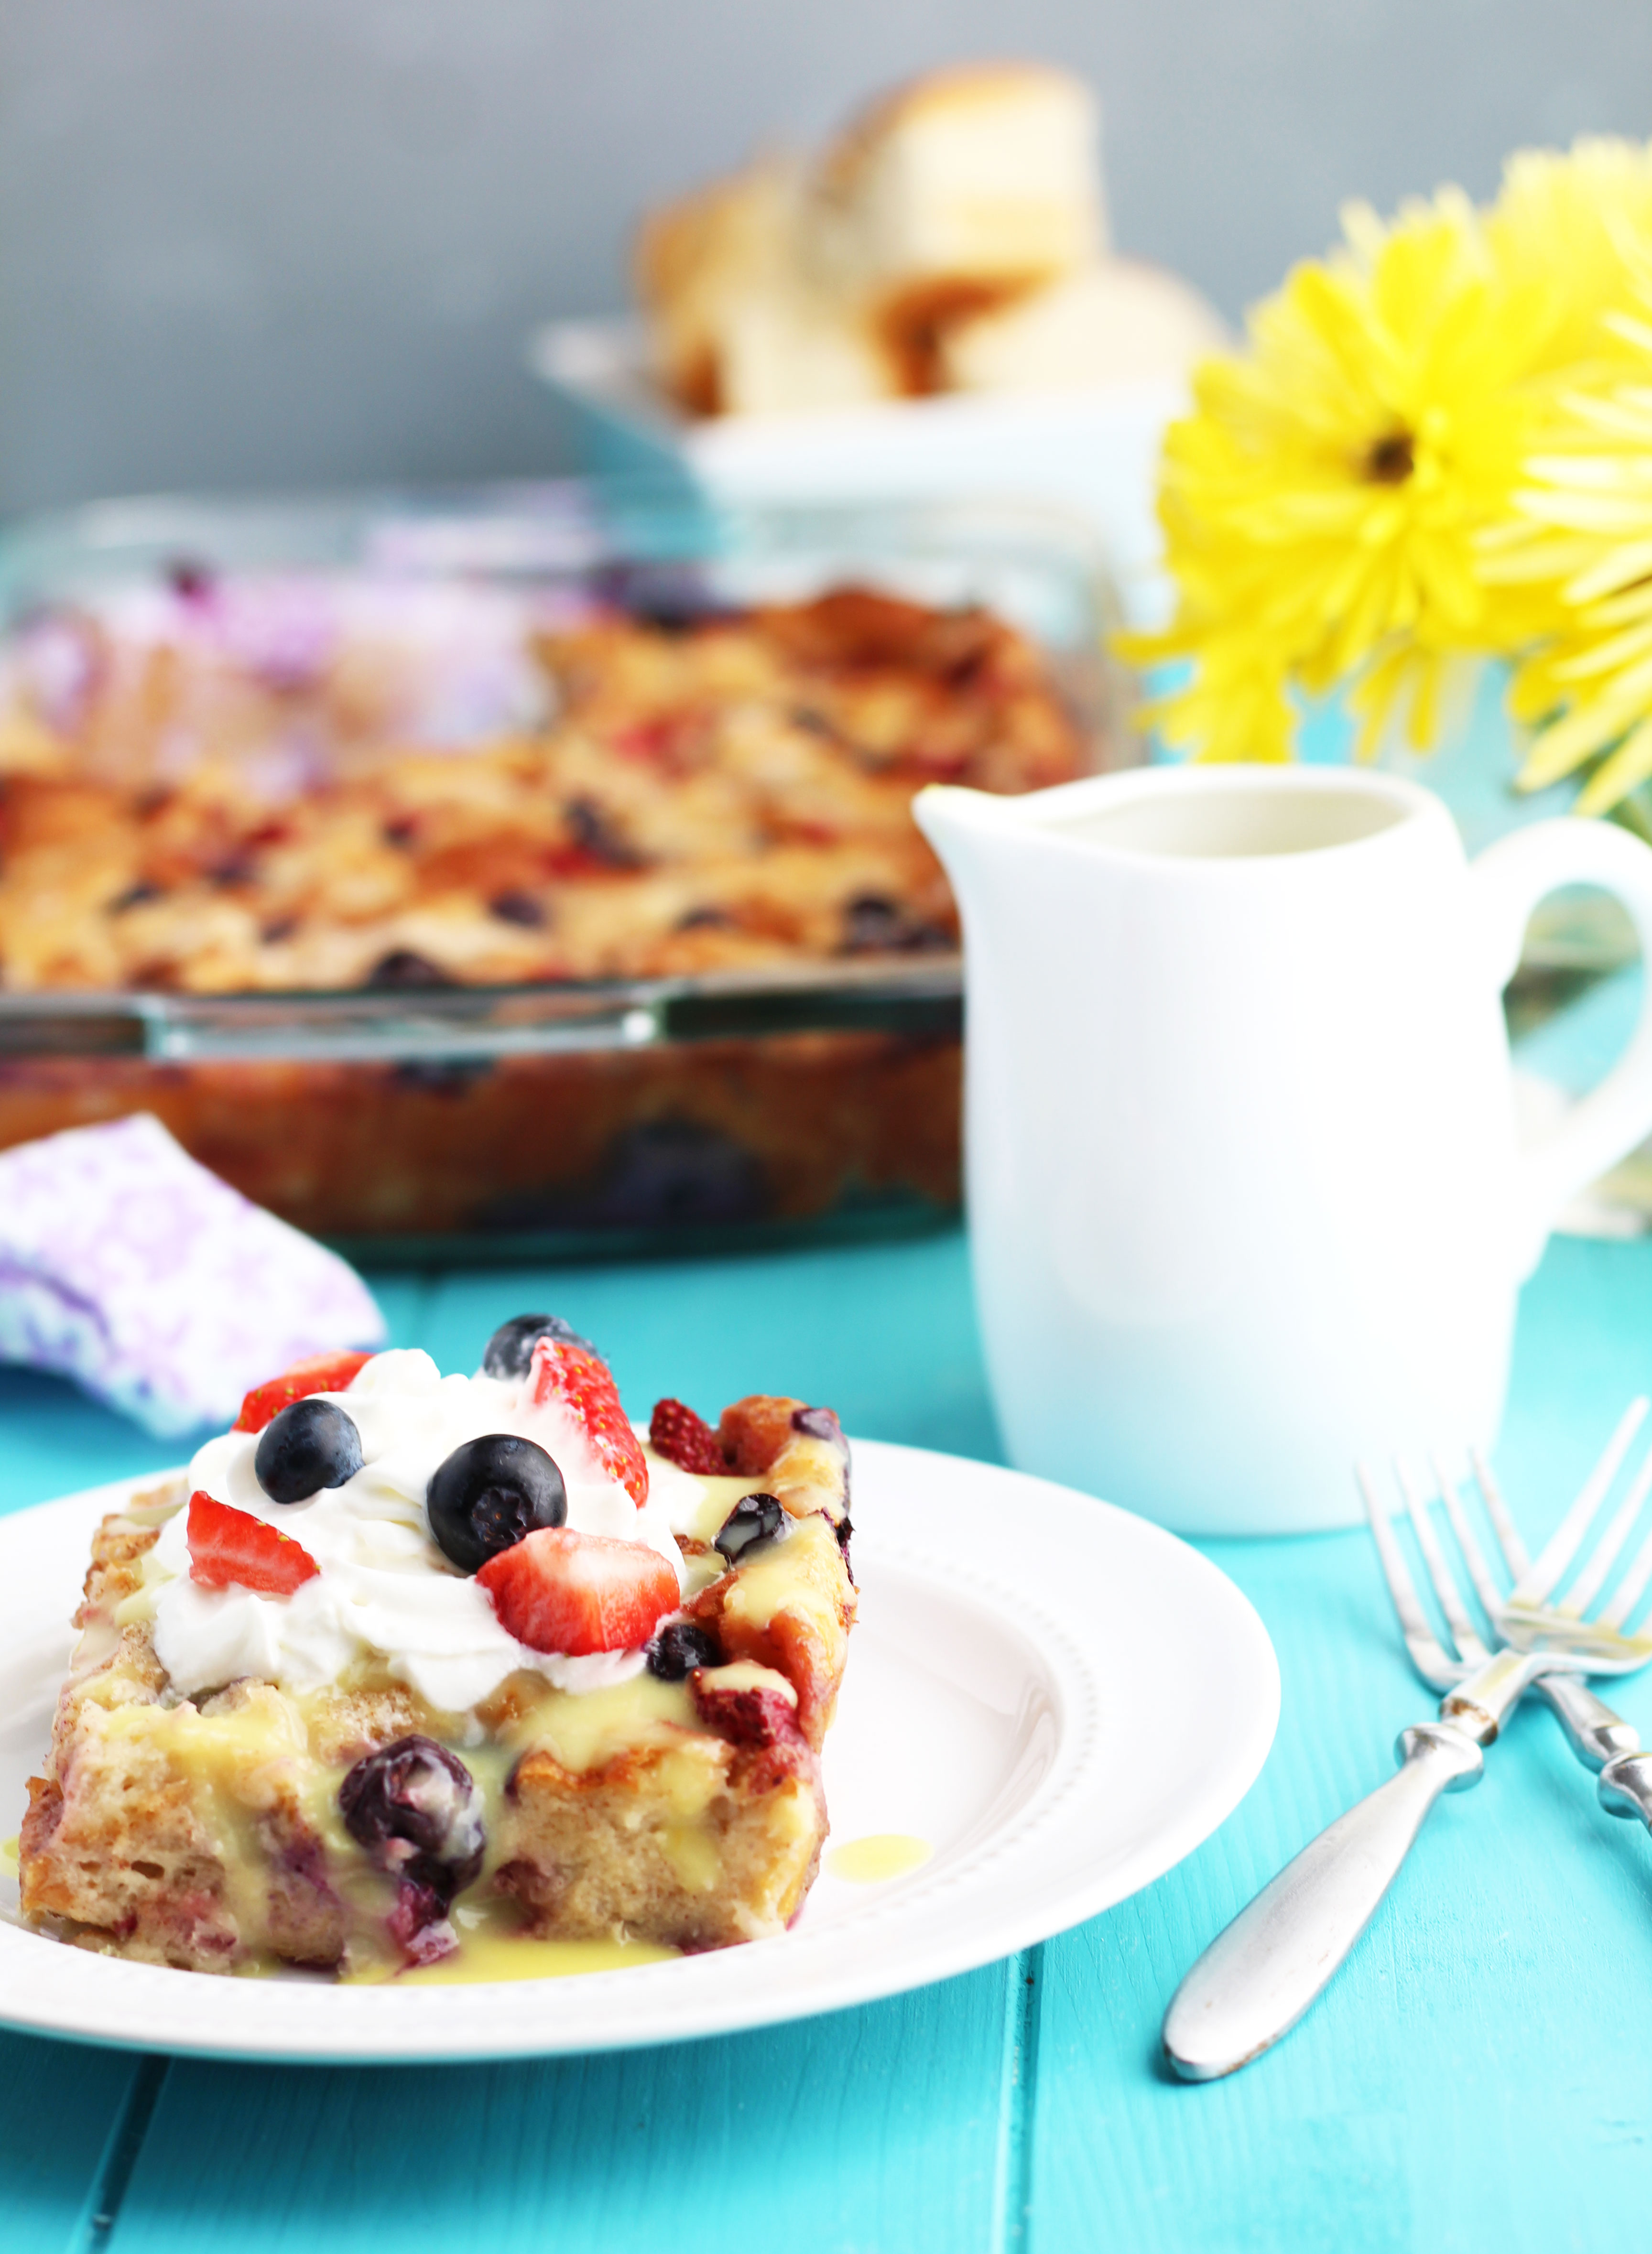 HawaiianSweet-Roll-and-Berry-Bread-Pudding-with-Lemon-Sauce-use